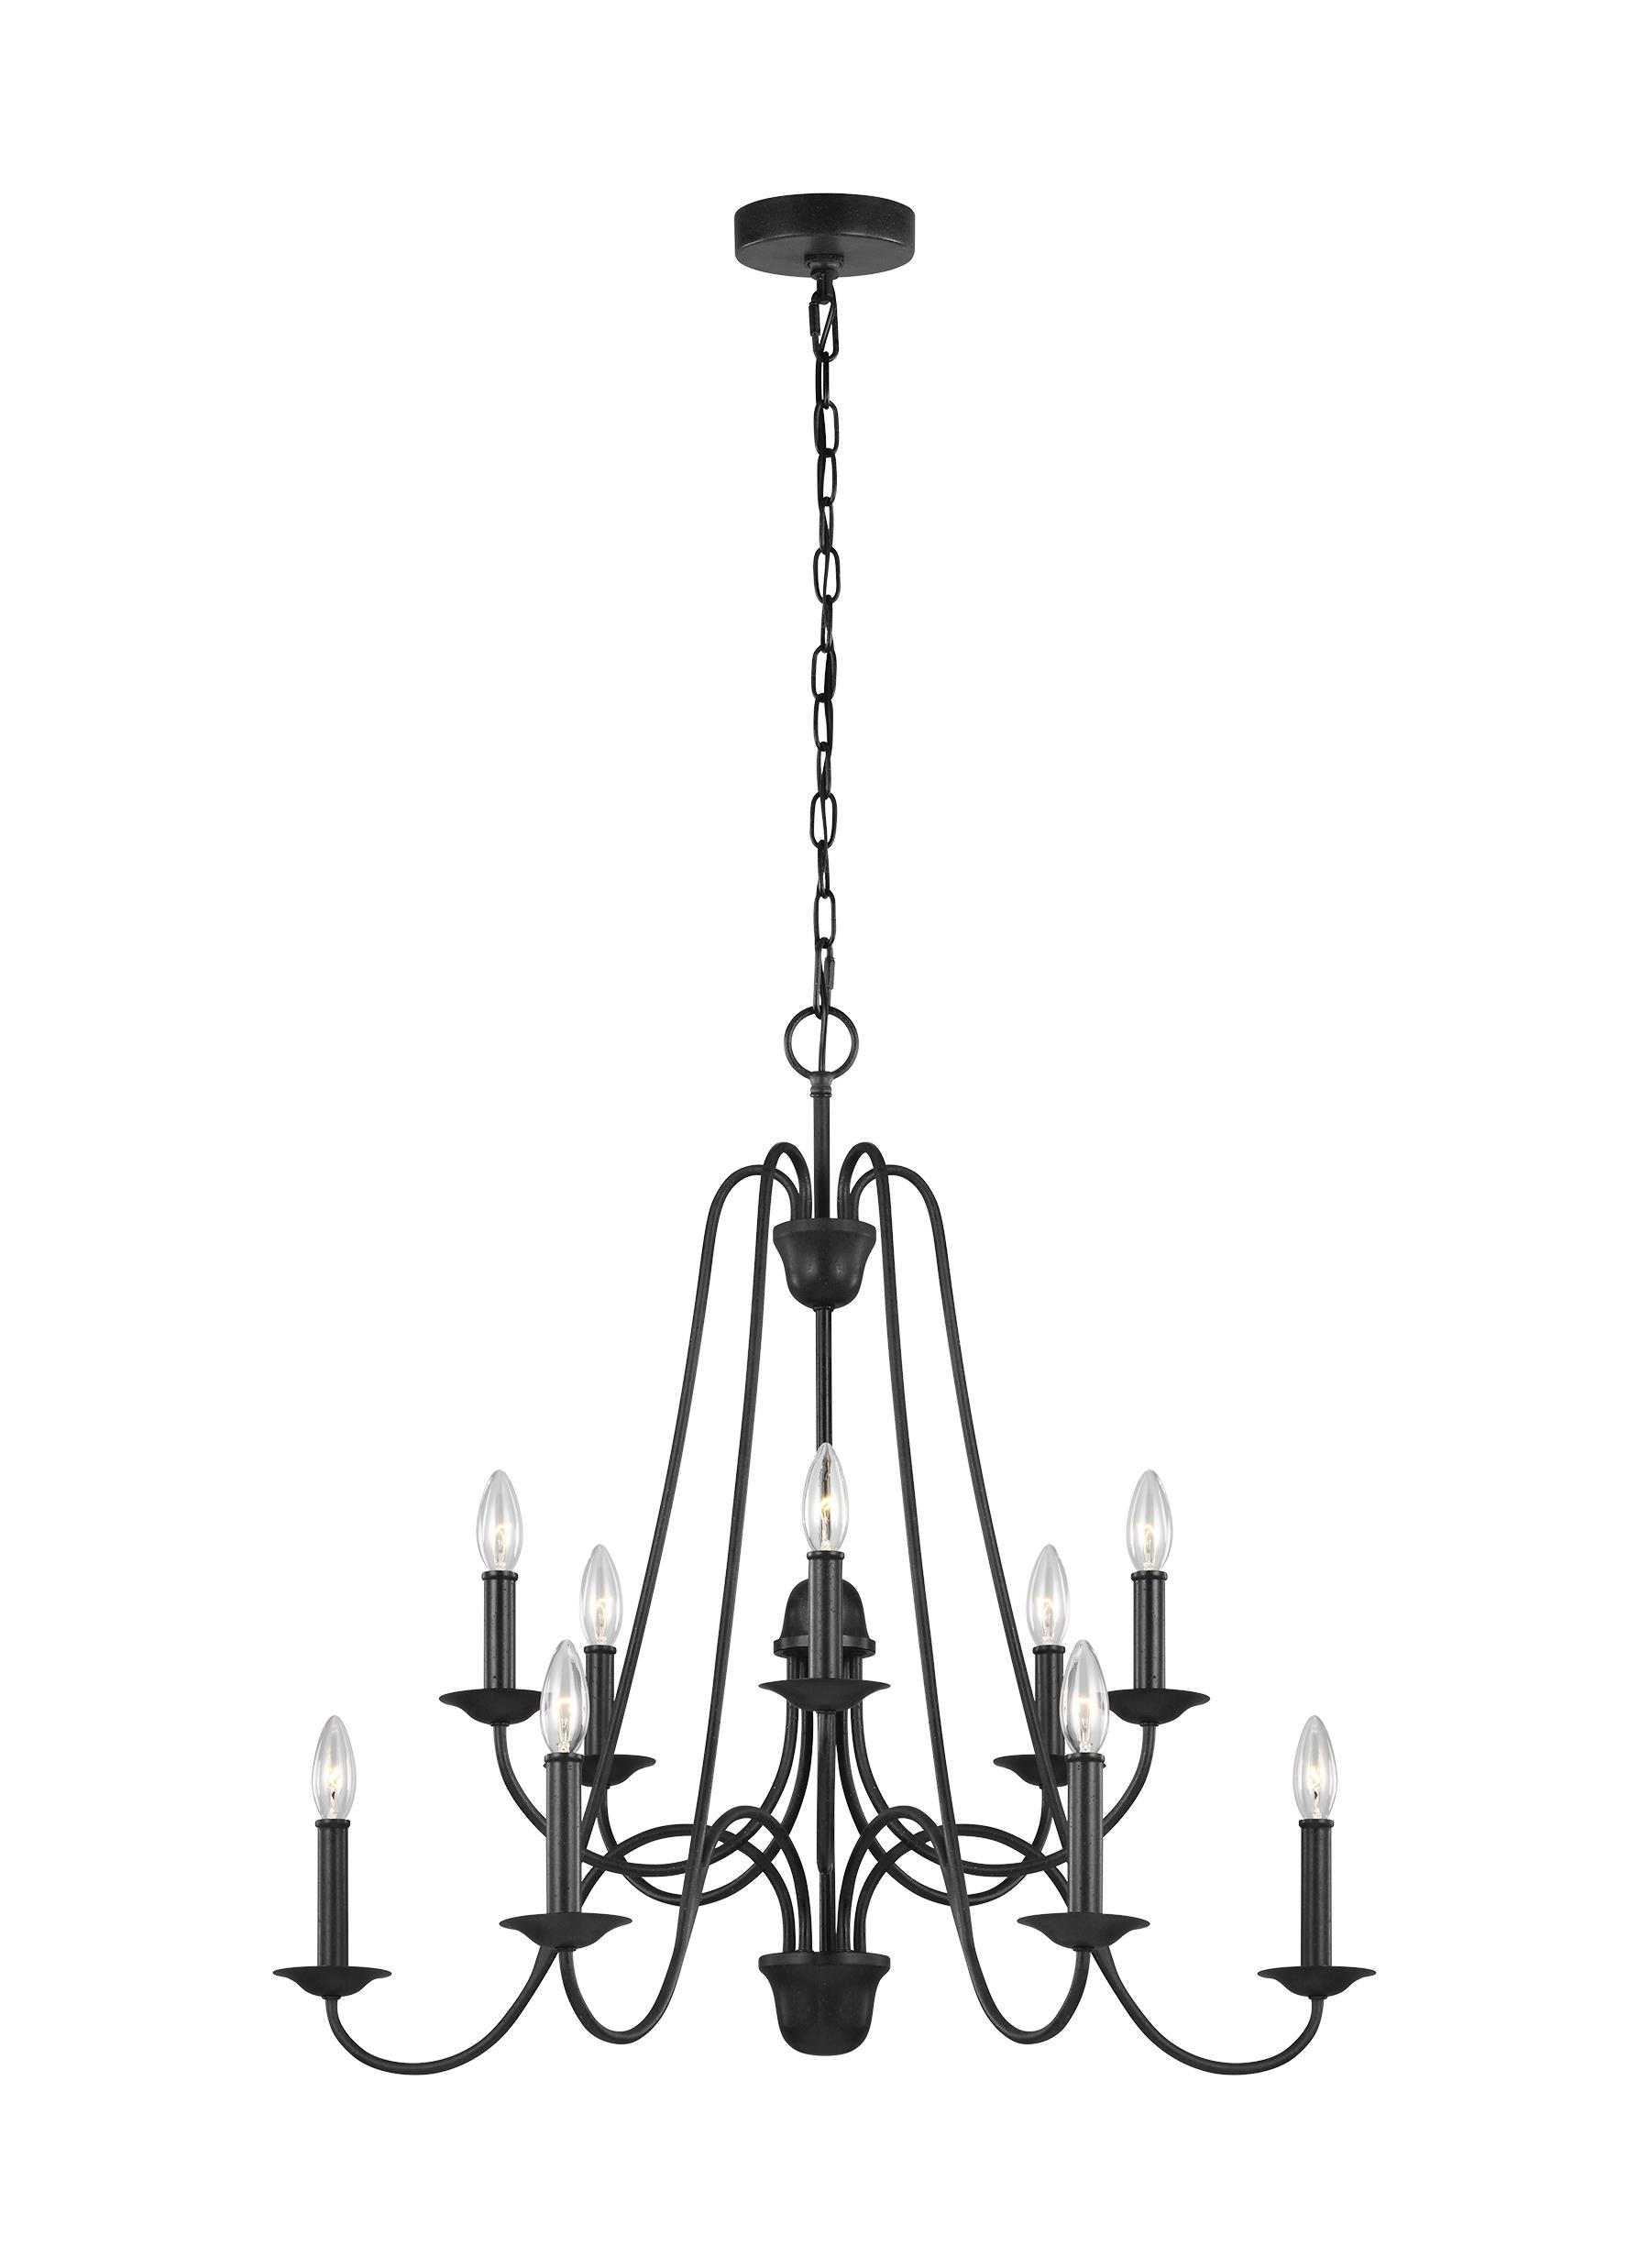 Boughton lighting collection from feiss 10 light chandelier arubaitofo Image collections